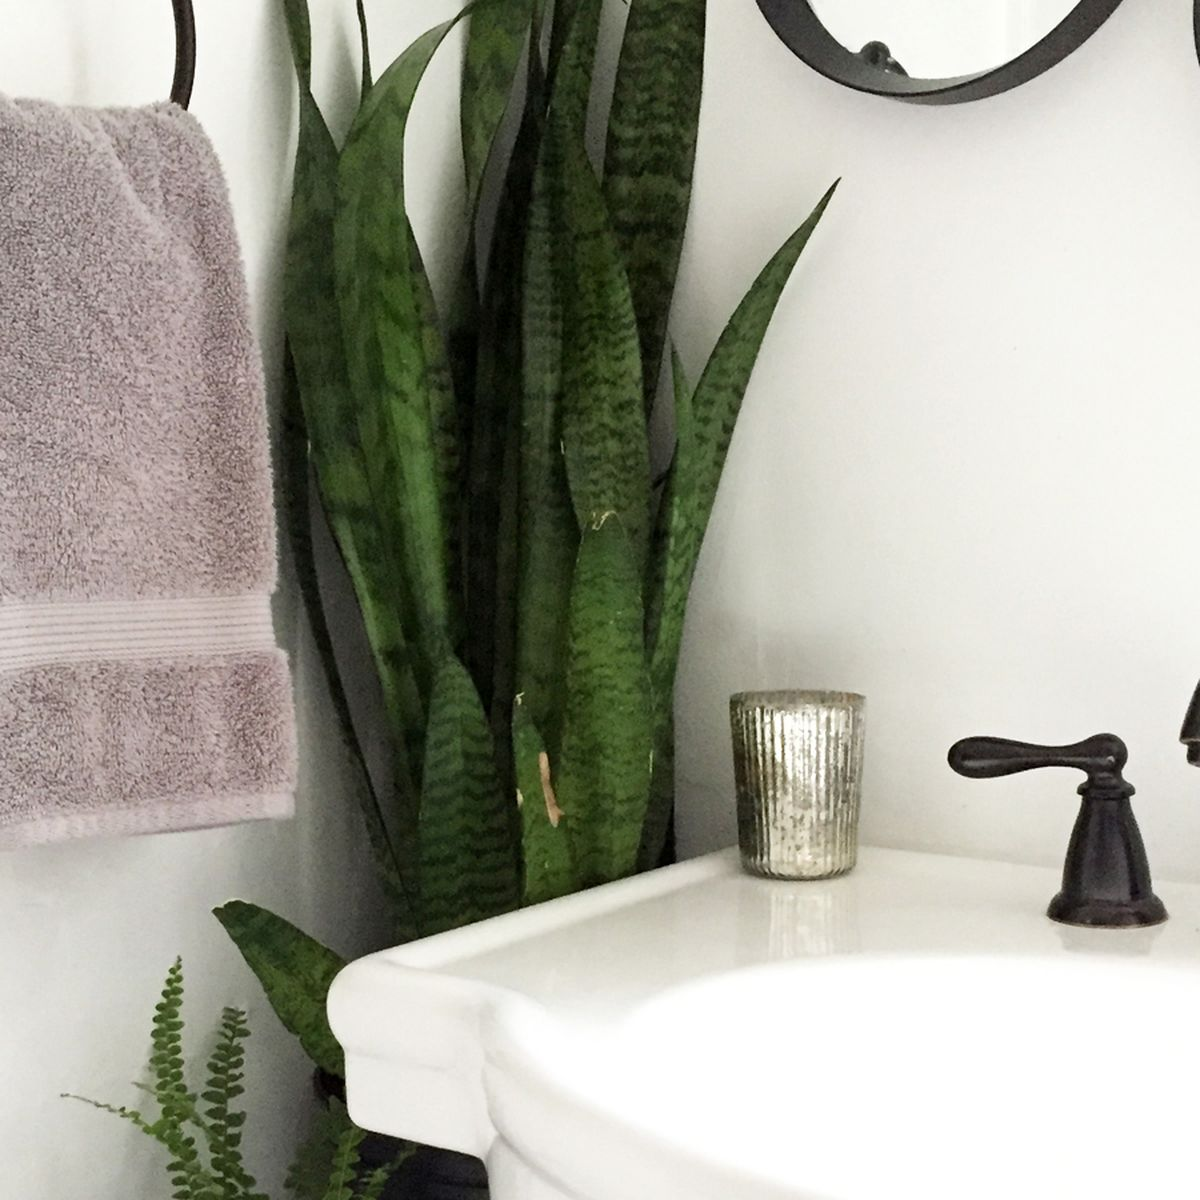 A Diy Tiny Bathroom Makeover On A Budget Before And After